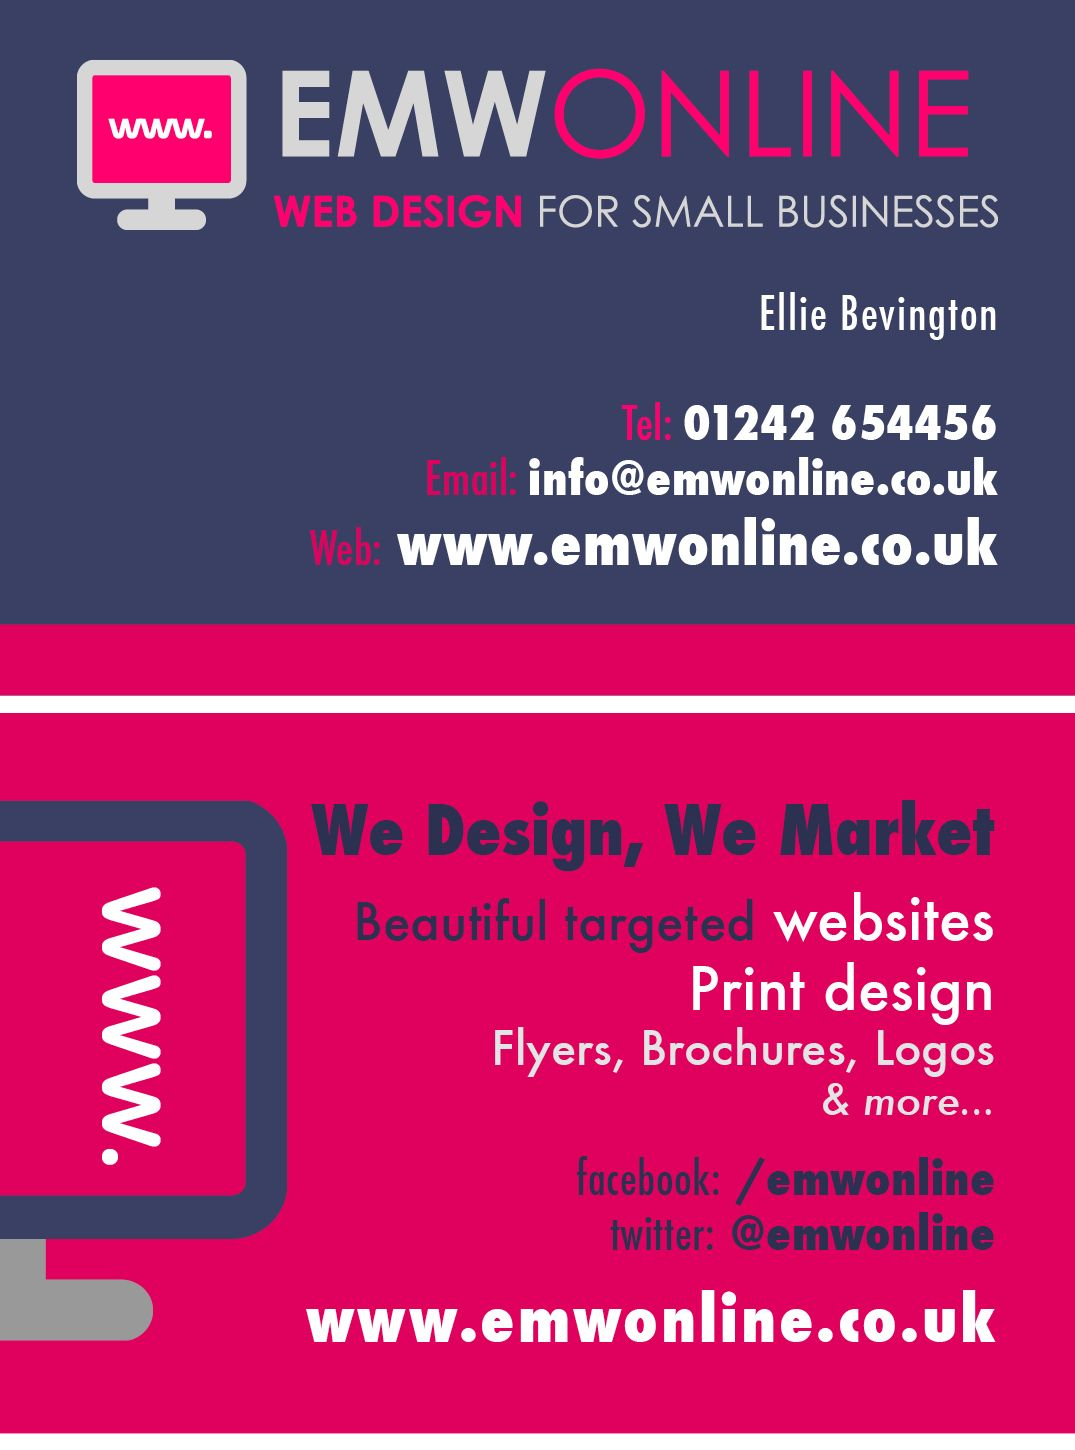 Our Newly Design Business Cards For Emwonline Web Design Print Design Flyer Web Design Business Card Design